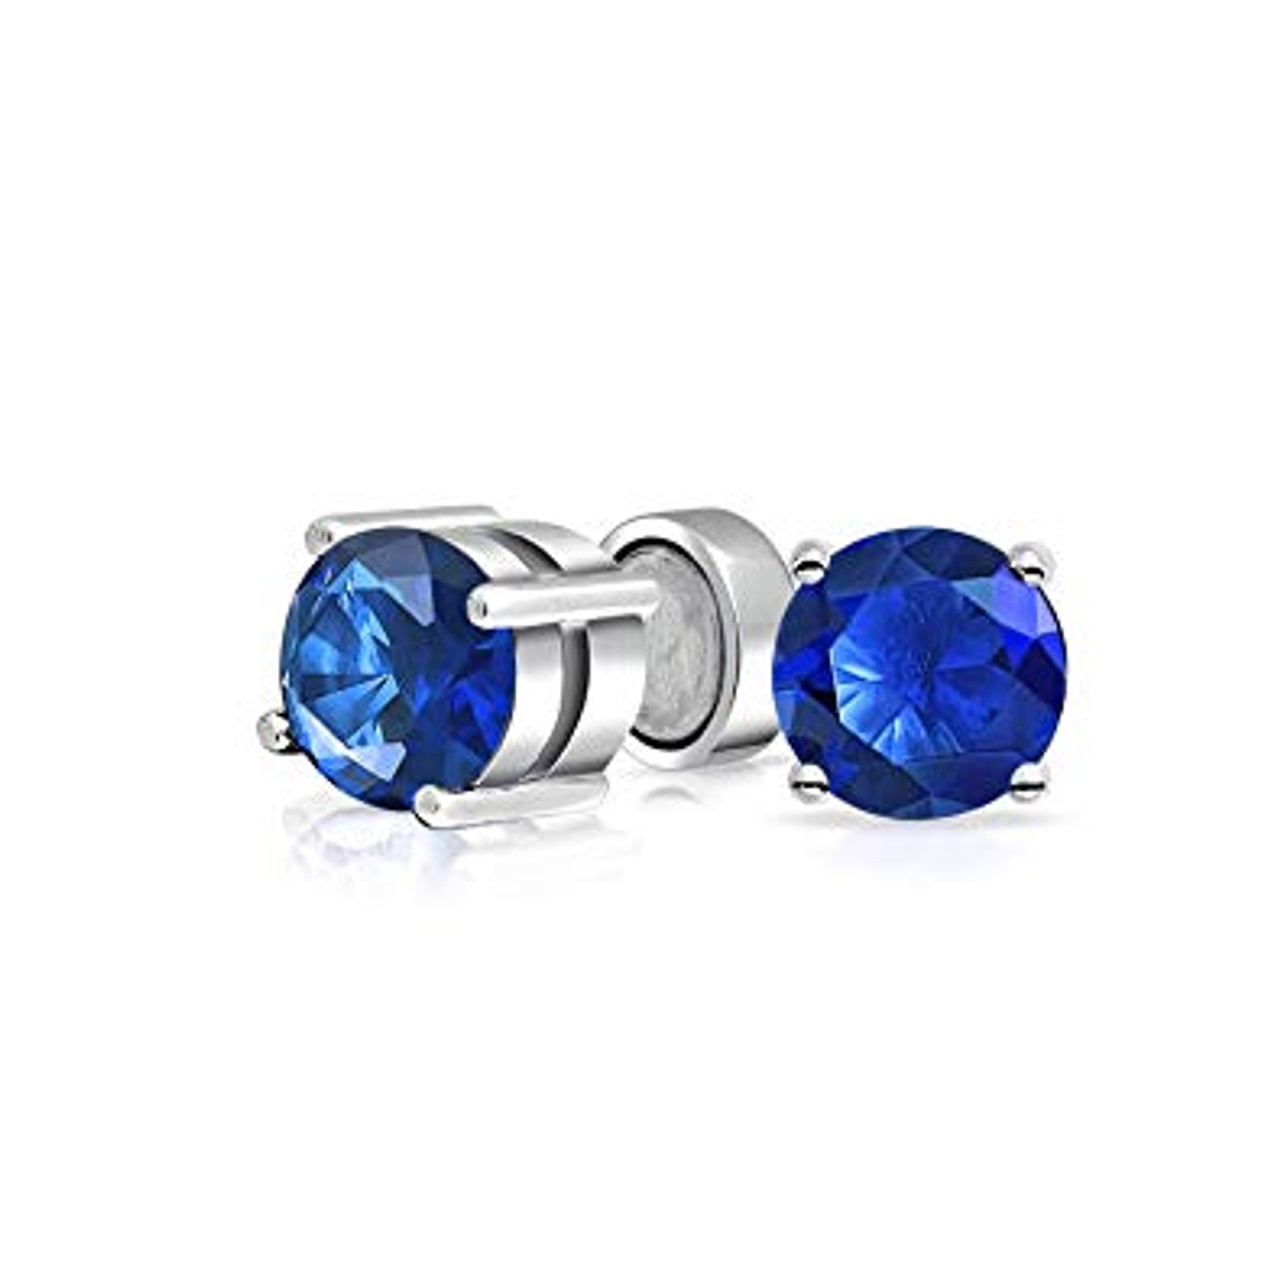 Earrings Magnetic with Blue Prong Set Cubic Zirconia 6mm Sold as a Pair